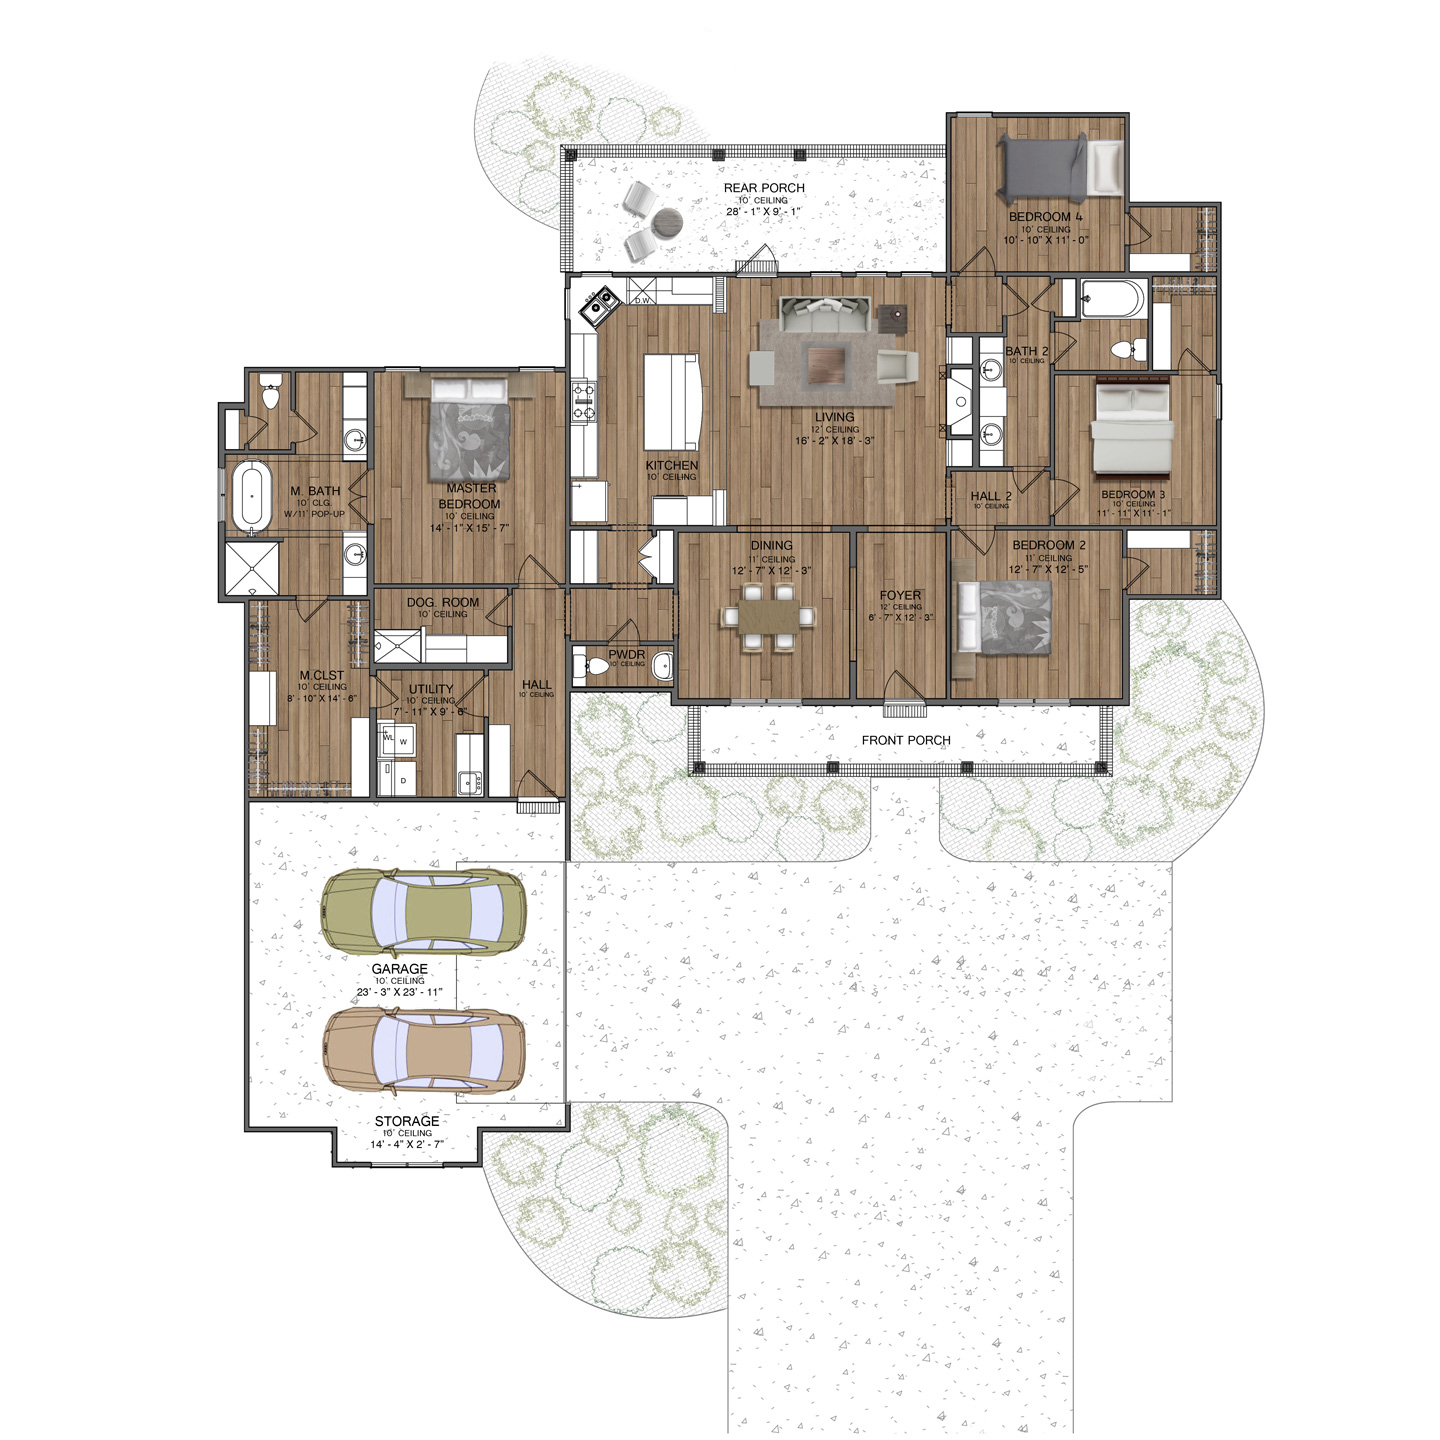 1611911123_2d floor plan depicstudio.jpg